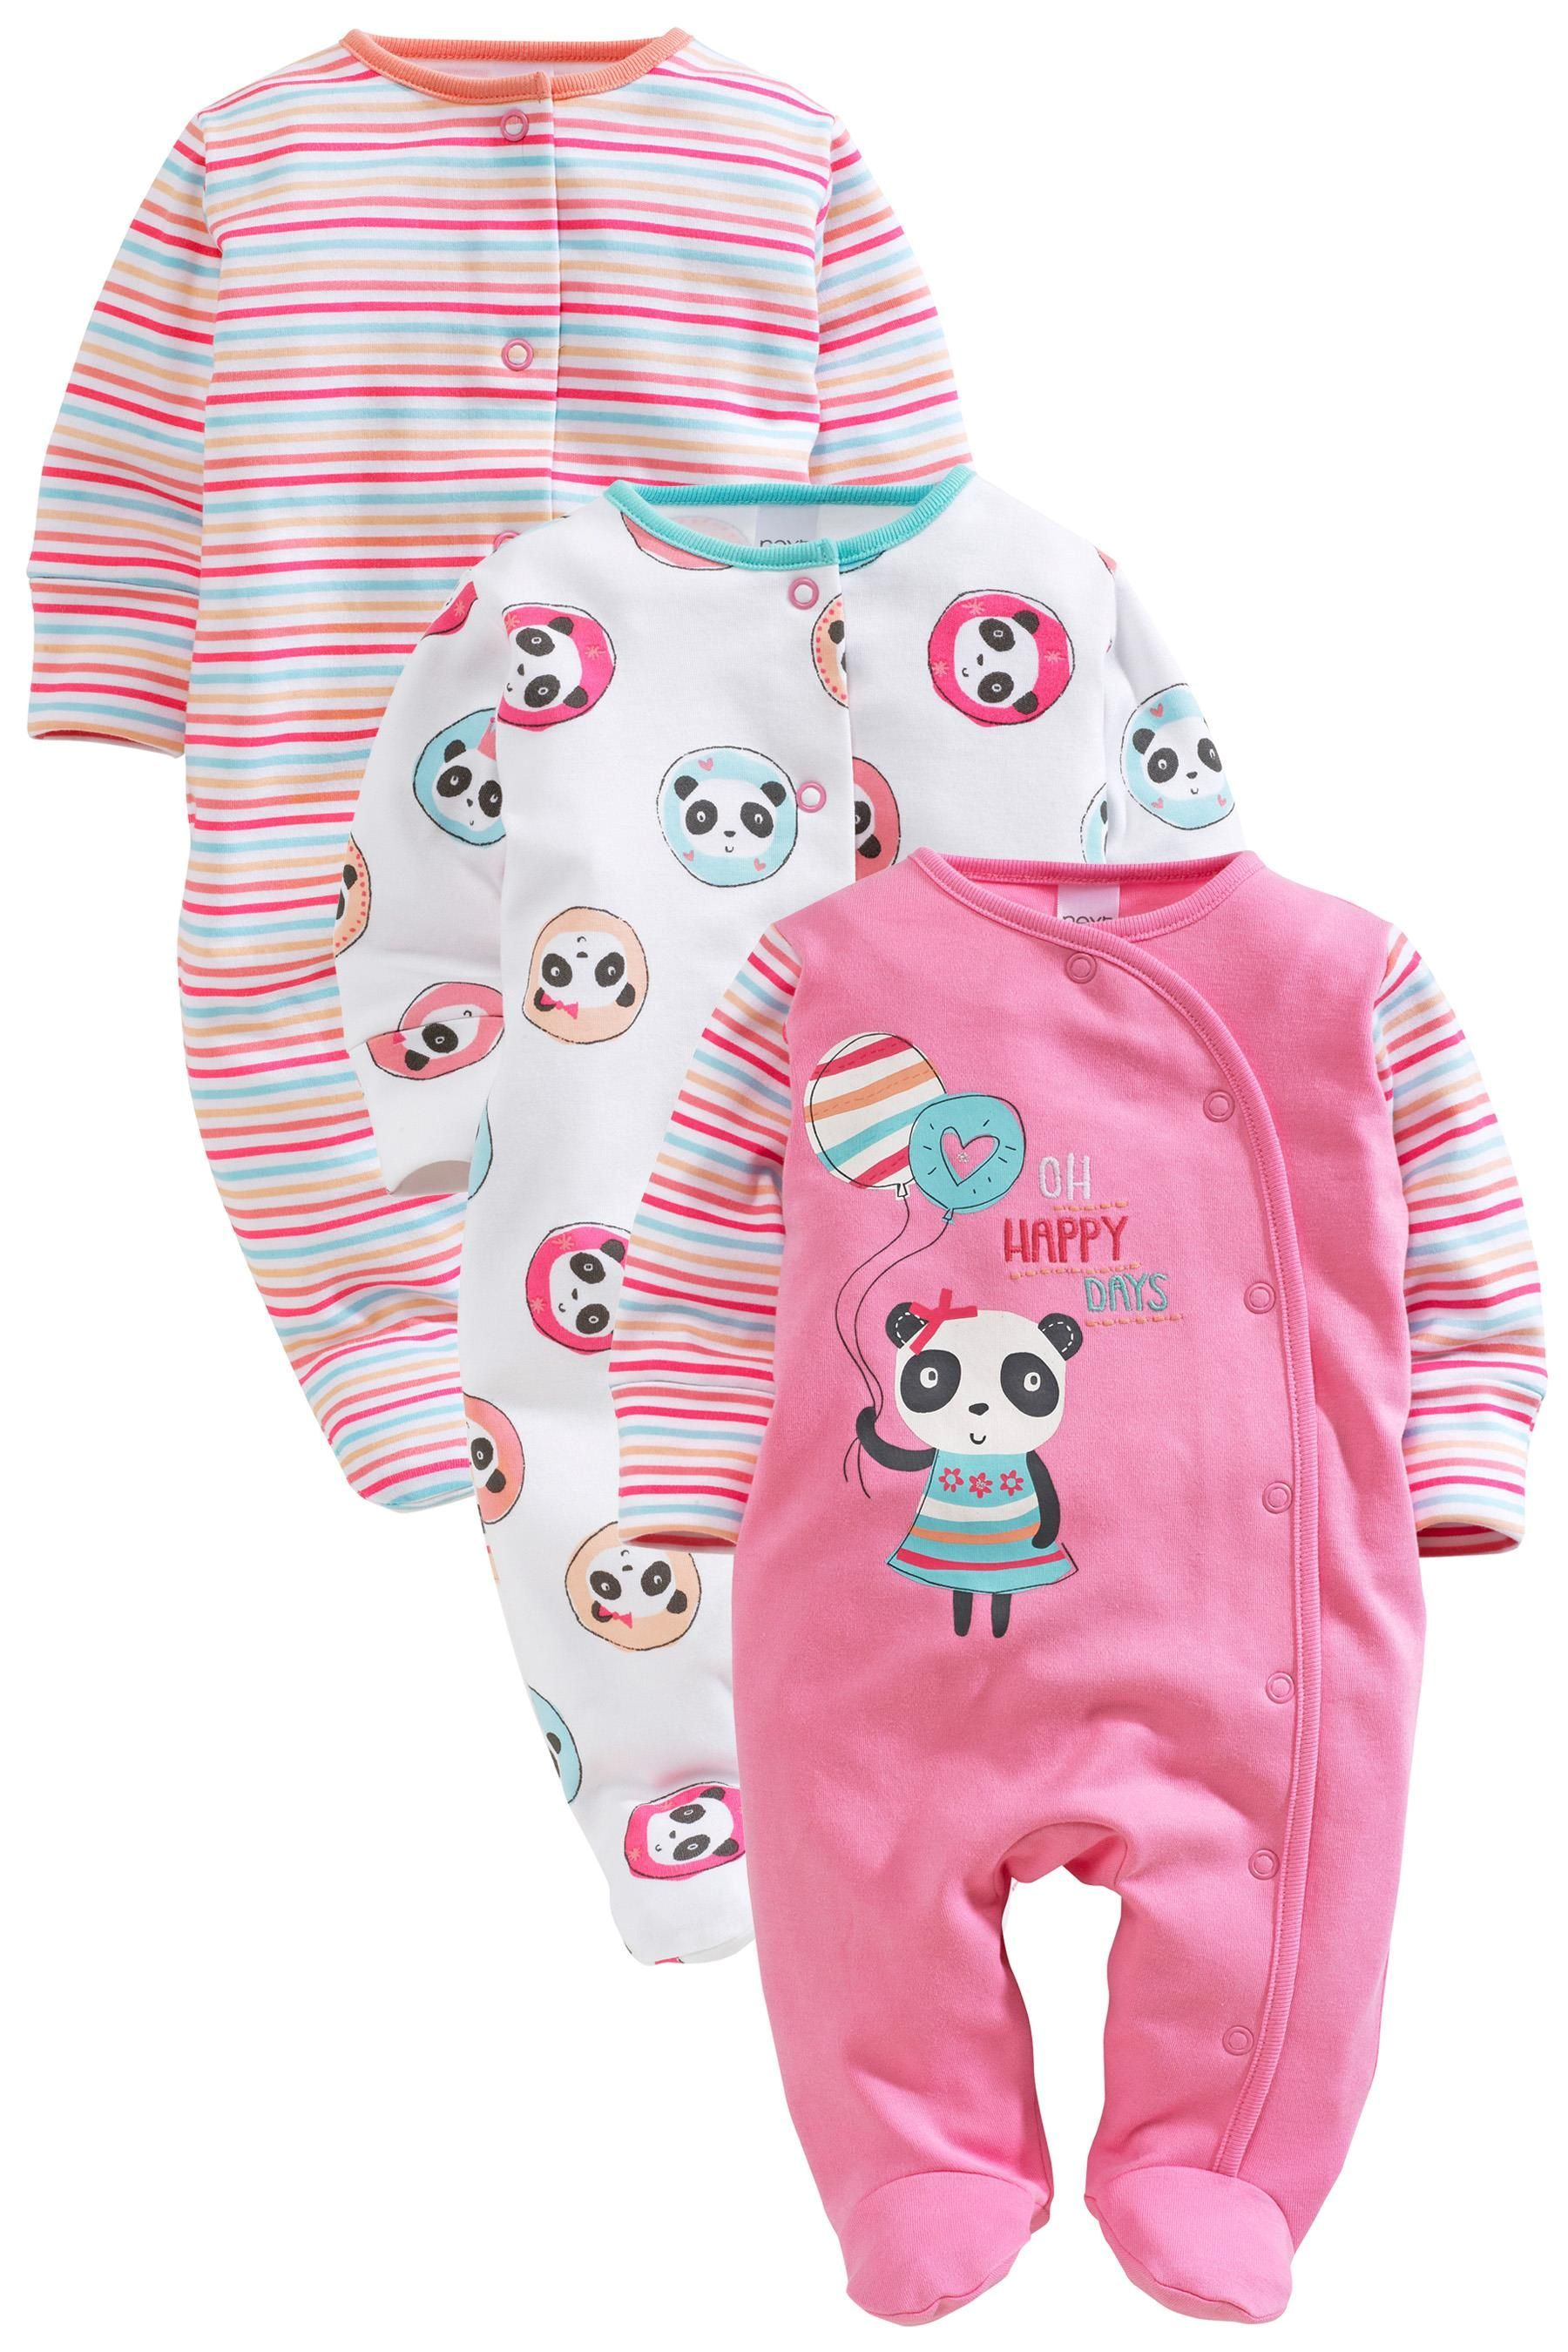 Buy Pink Panda Sleepsuits Three Pack 0mths 2yrs from the Next UK